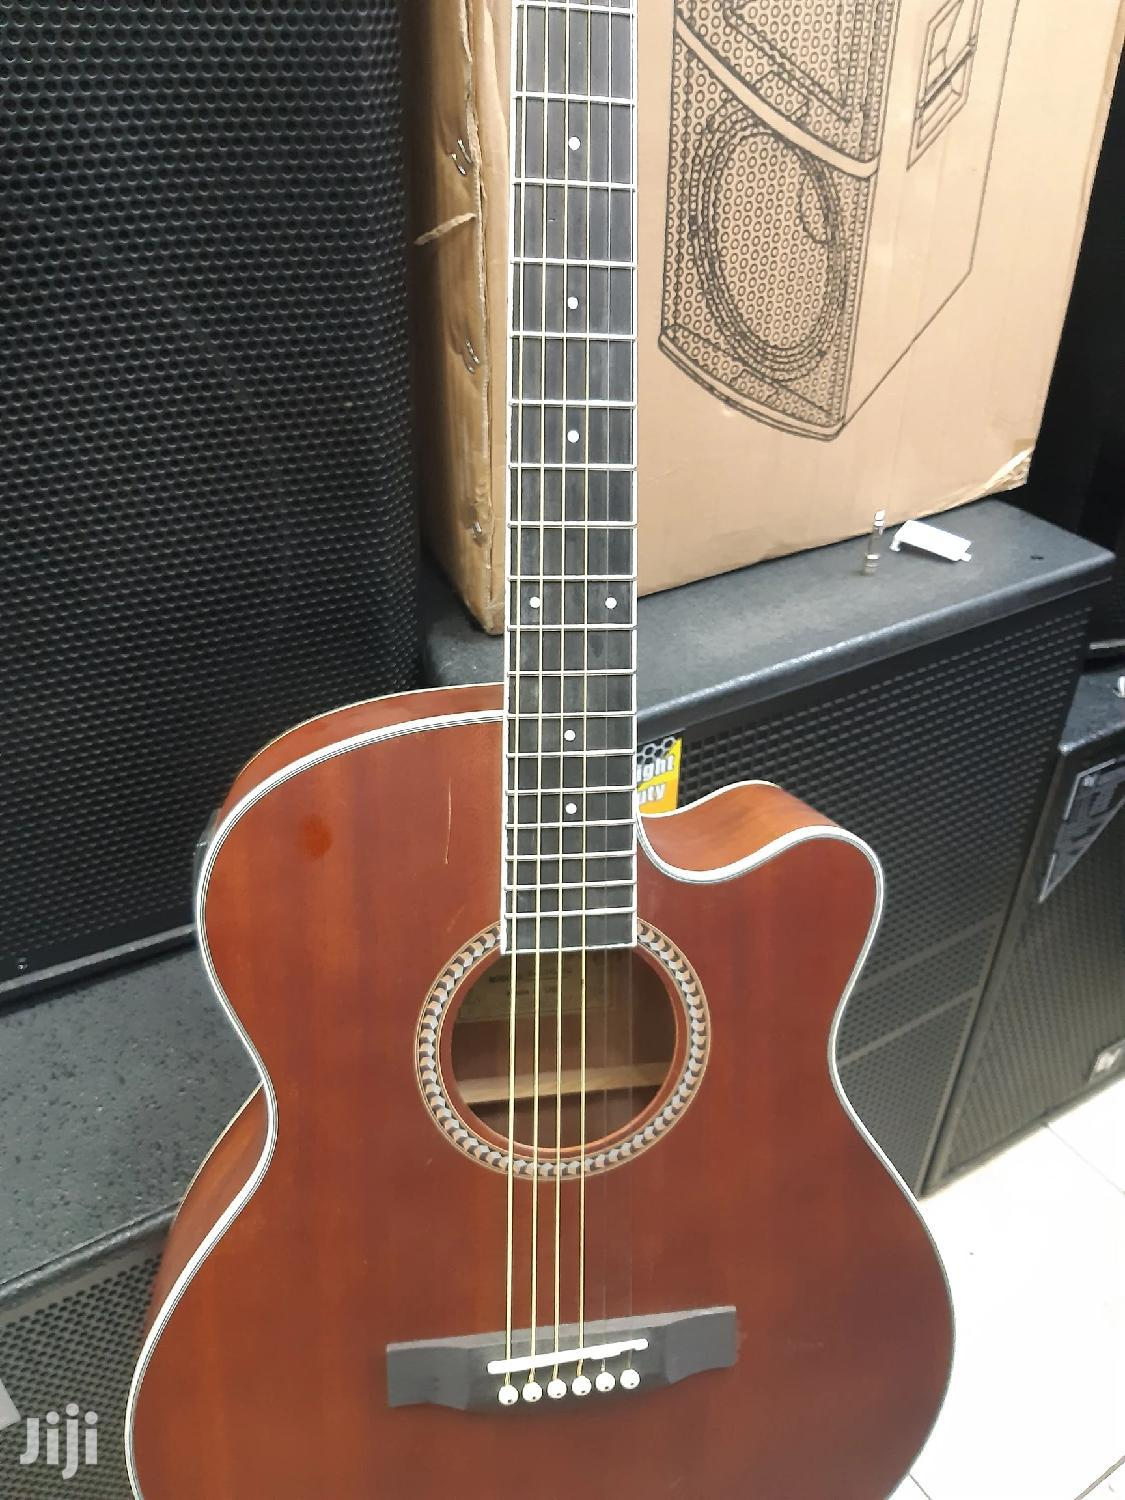 Semi Acoustic Guitar With A In Build Tuner | Musical Instruments & Gear for sale in Nairobi Central, Nairobi, Kenya